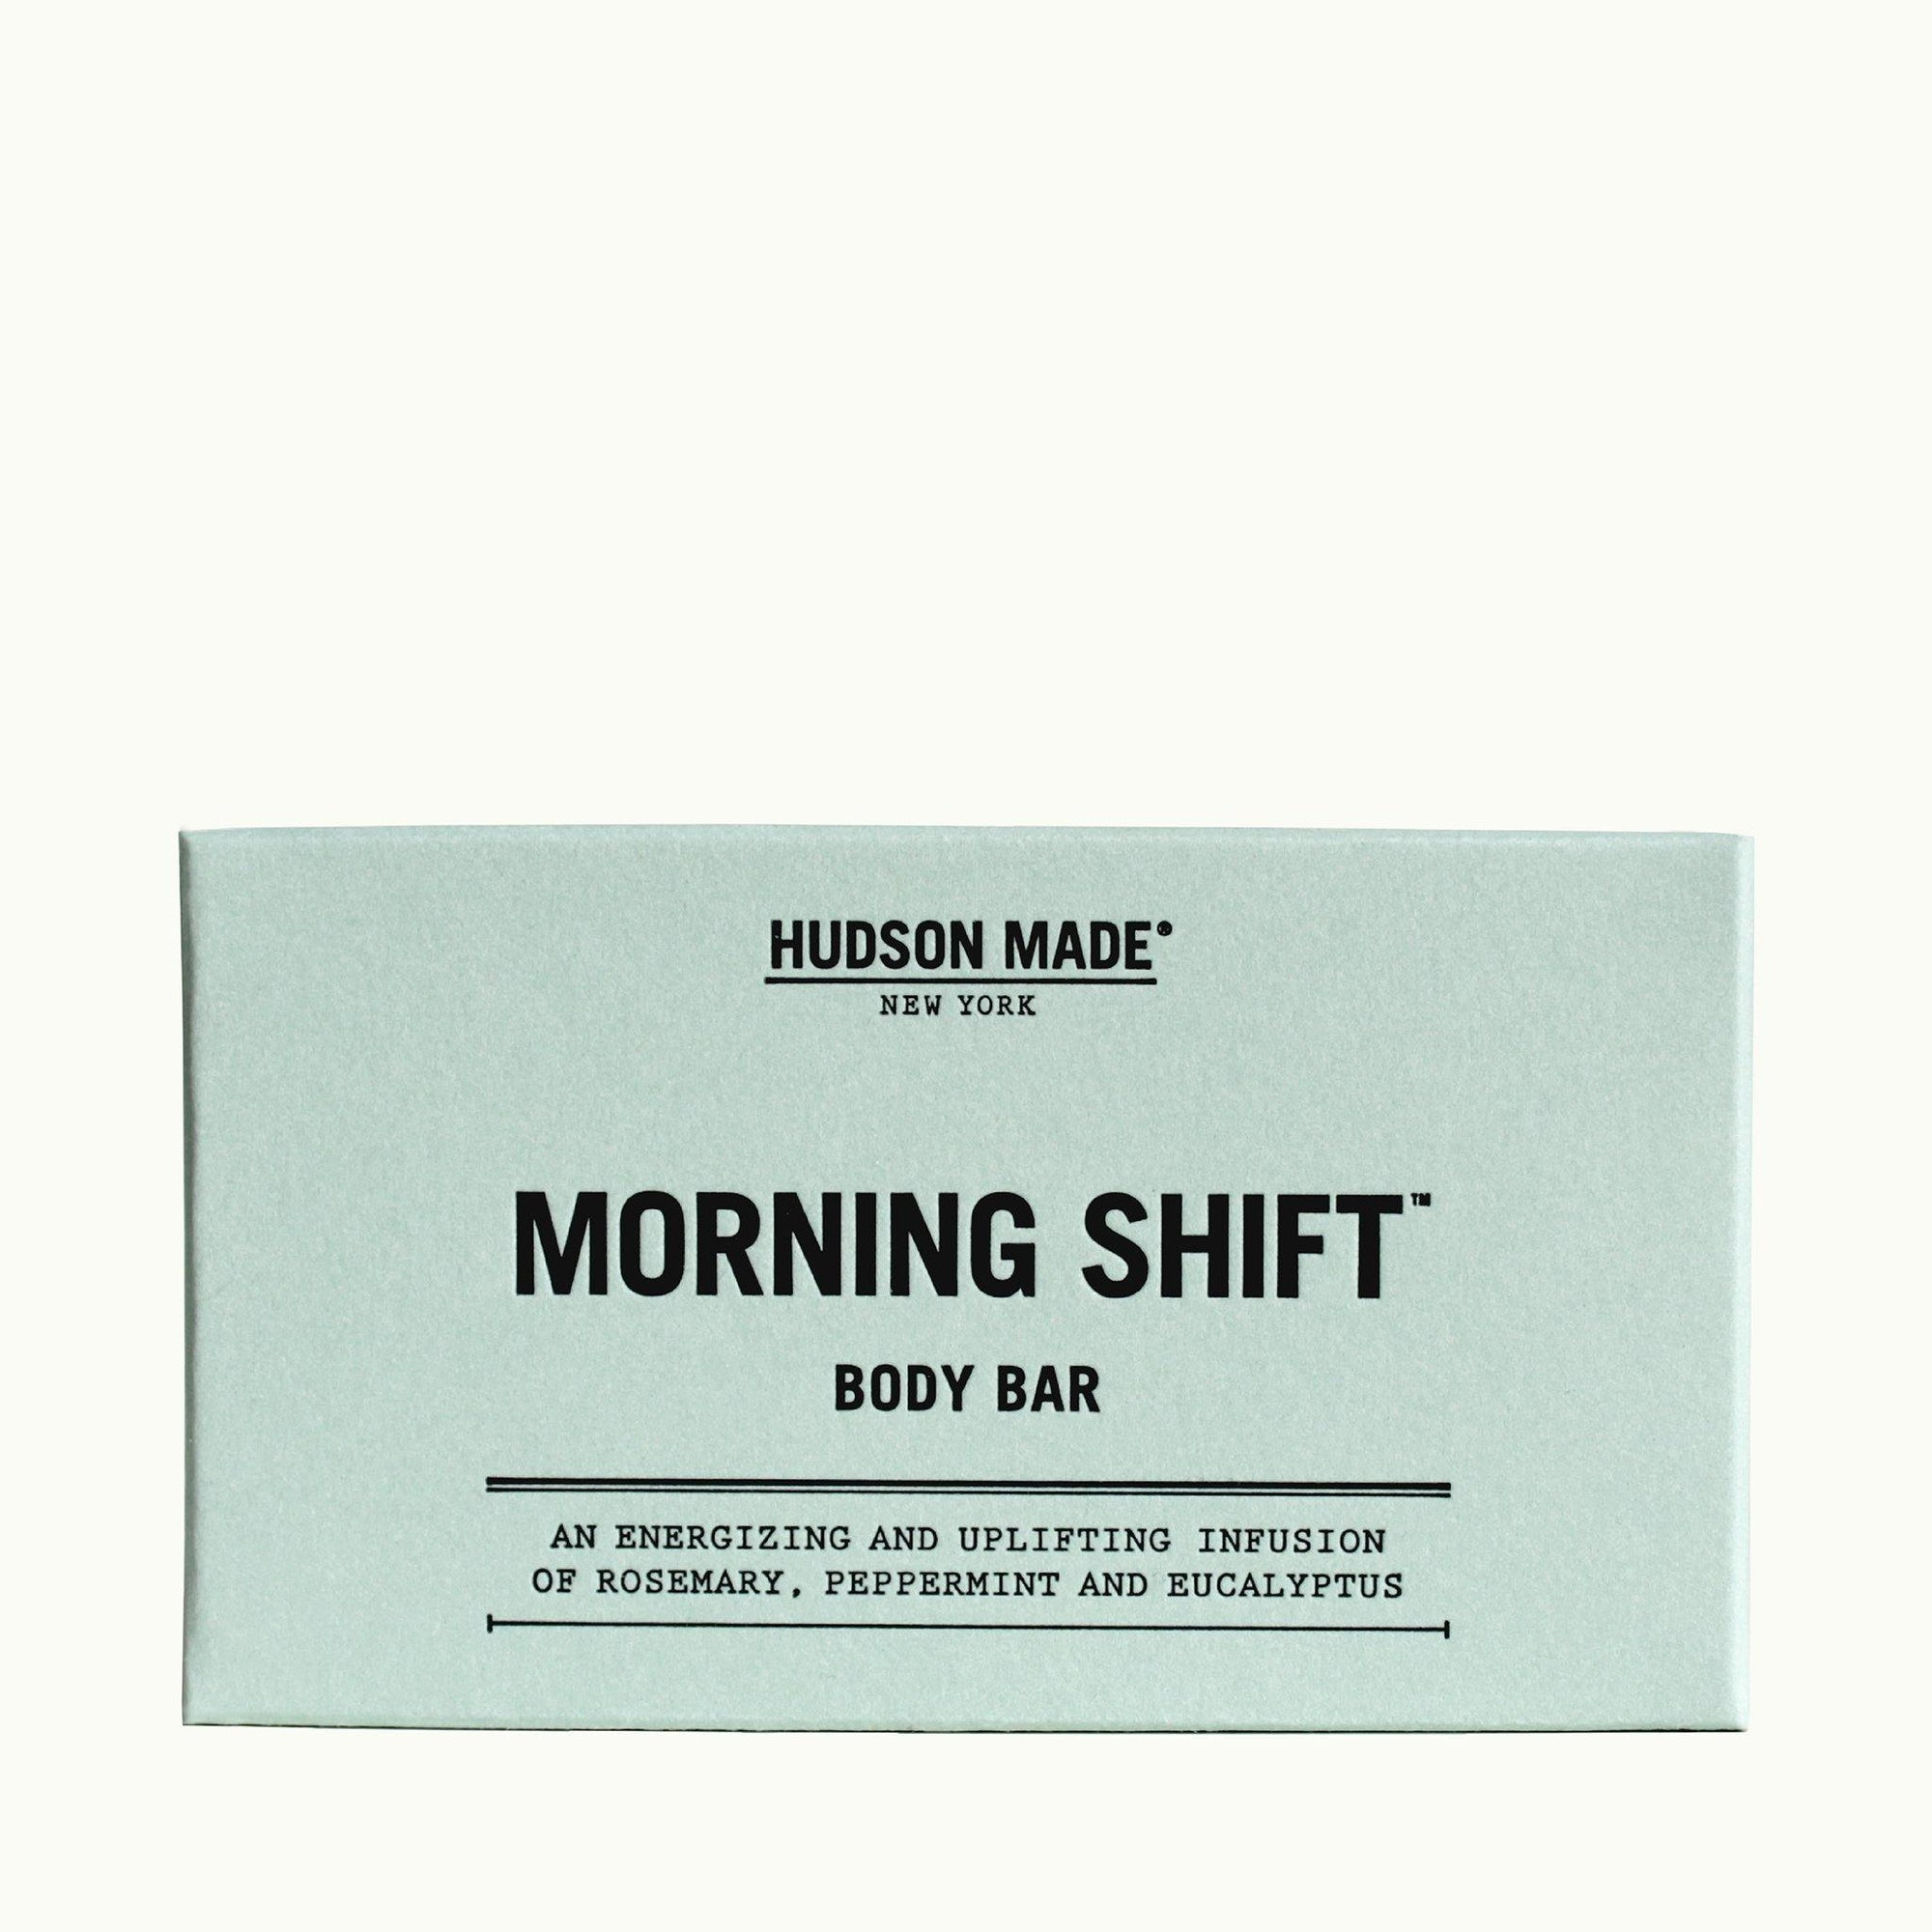 The light blue grey packaging of the Hudson Made Morning Shift Body Bar Soap